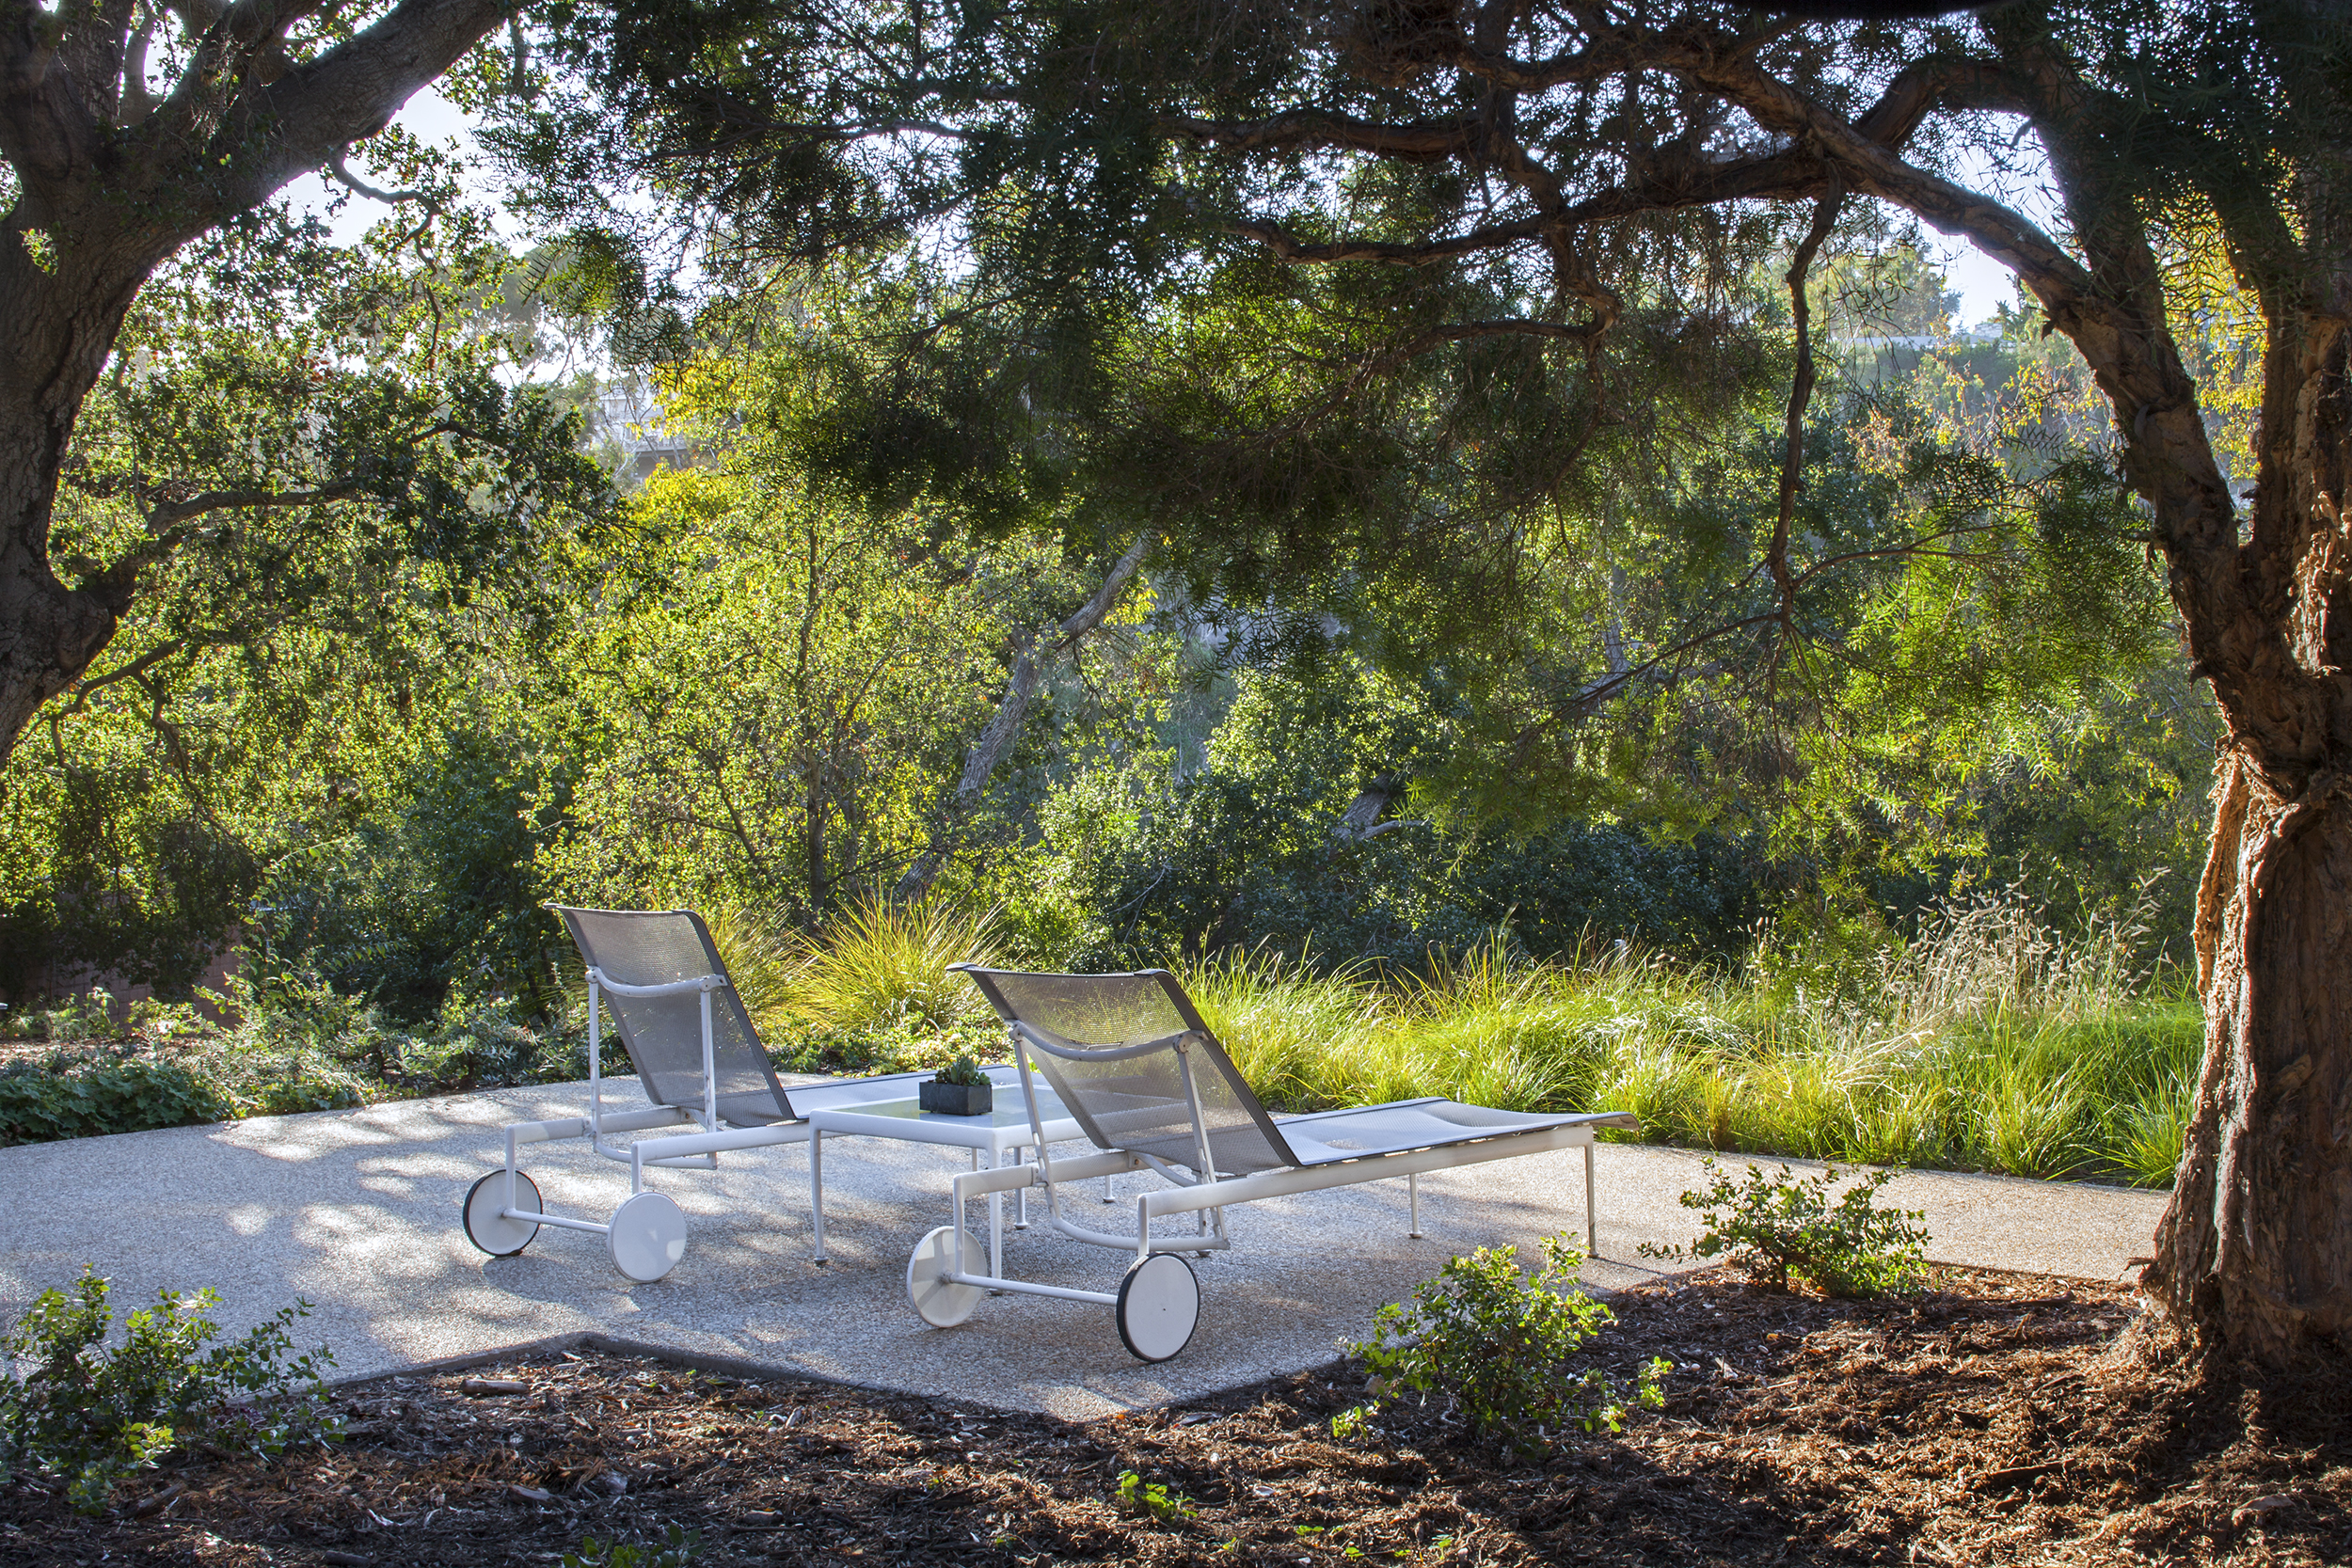 relaxing patio for two modern outdoor furniture in oak tree clearing - Rustic Canyon - Los Angeles garden design by Campion Walker Landscapes.jpg